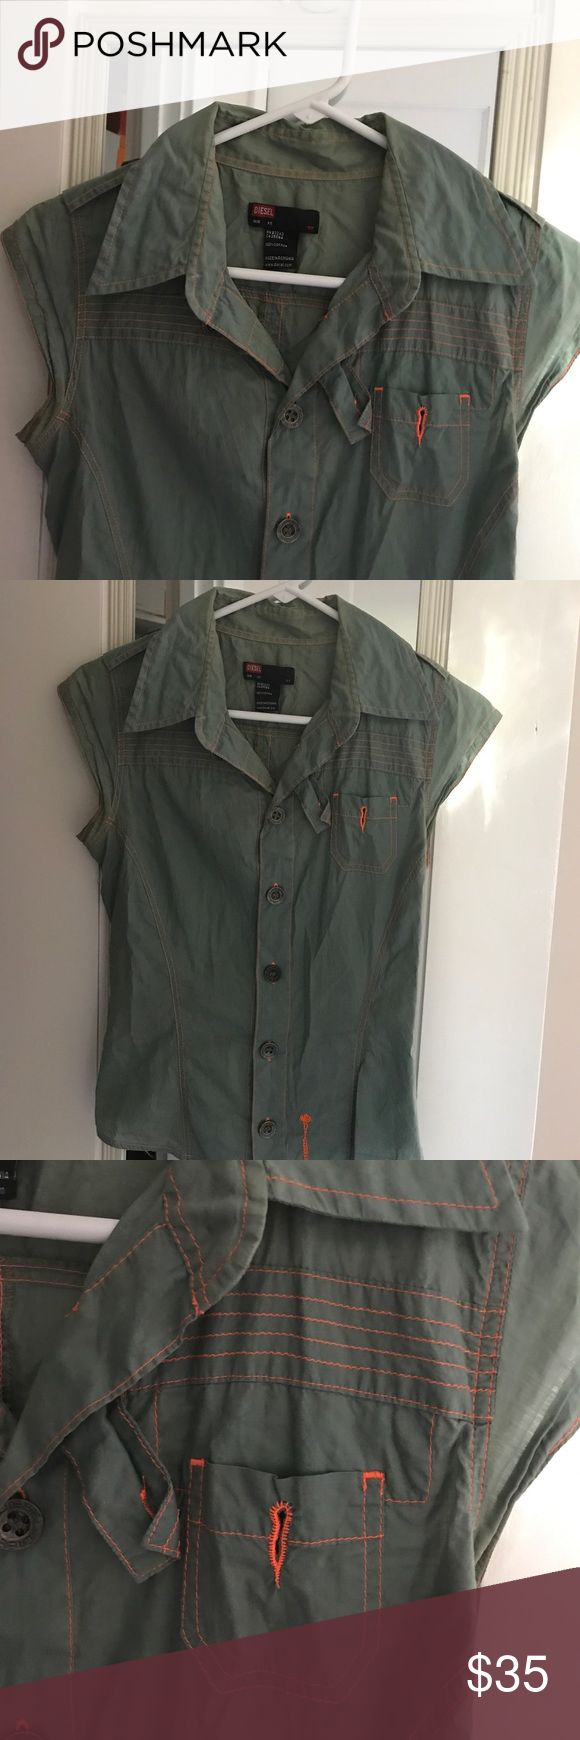 Diesel blouse This is a really nice fit blouse. I do not think Diesel makes as nice women clothes as it used to. It is in excellent condition. No flaws, just does not fit me anymore:( Diesel Tops Blouses